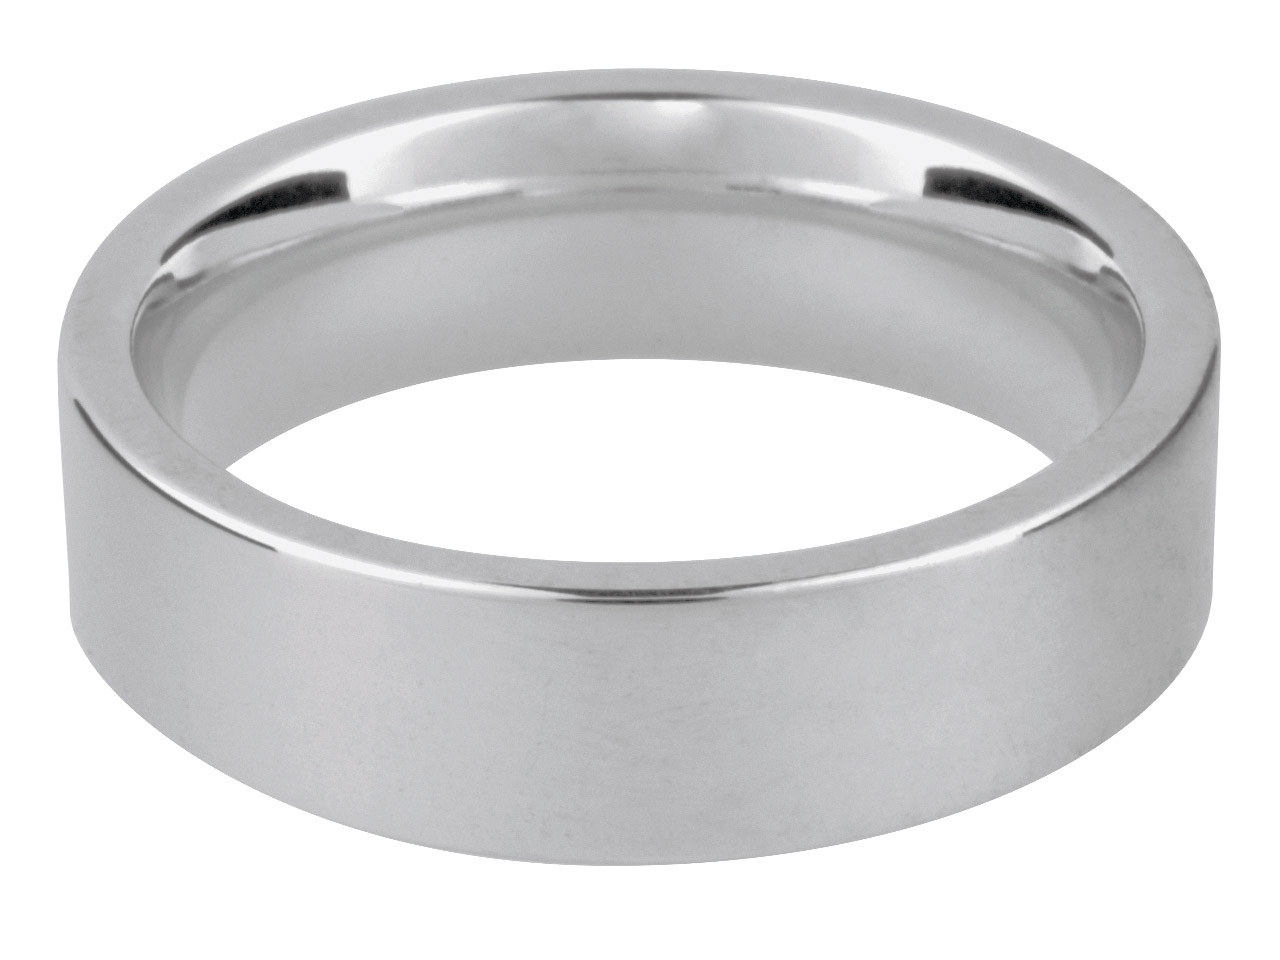 18ct White Easy Fit Wedding Ring   4.0mm Y 6.8gms Medium Weight       Hallmarked Wall Thickness 1.56mm